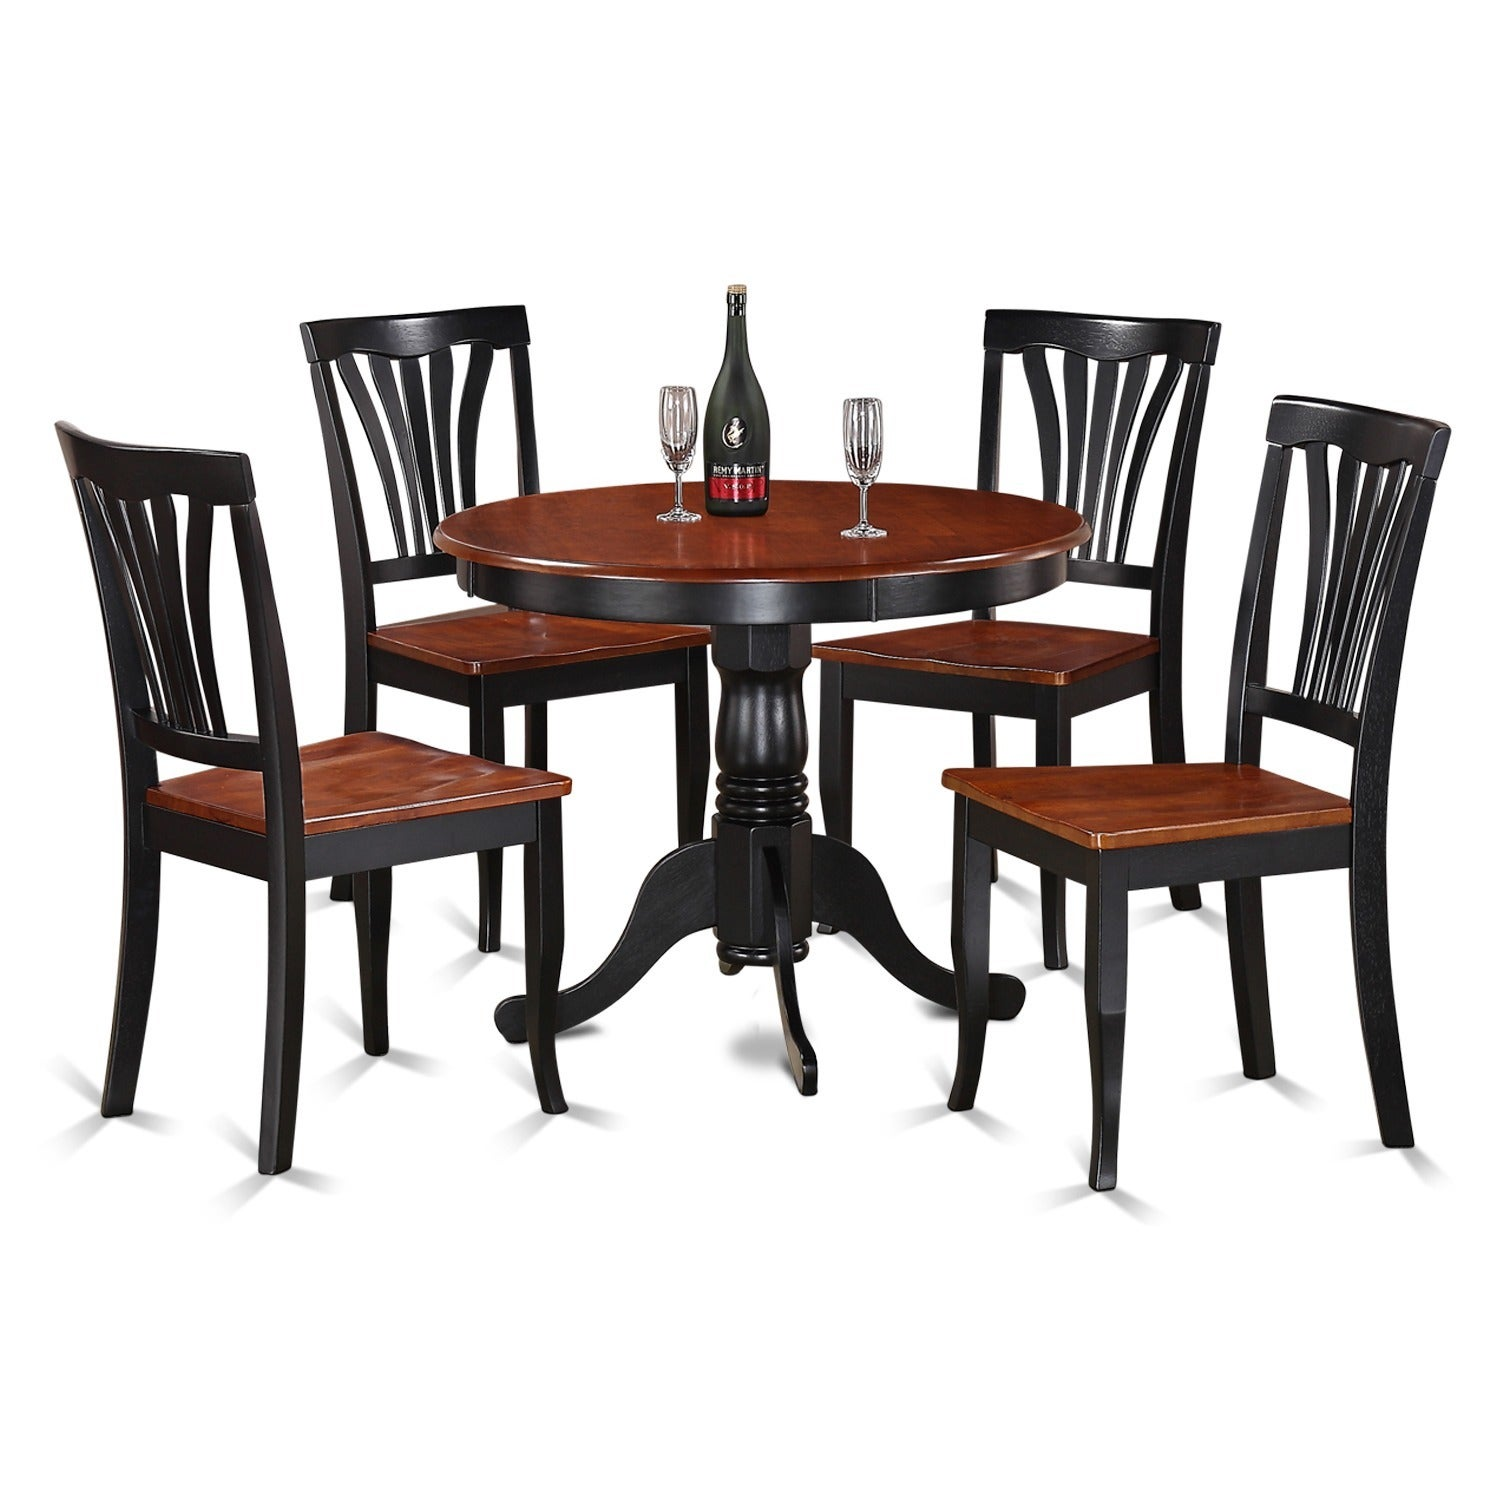 5-piece Round Black and Cherry Kitchen Table Set (5 Piece...